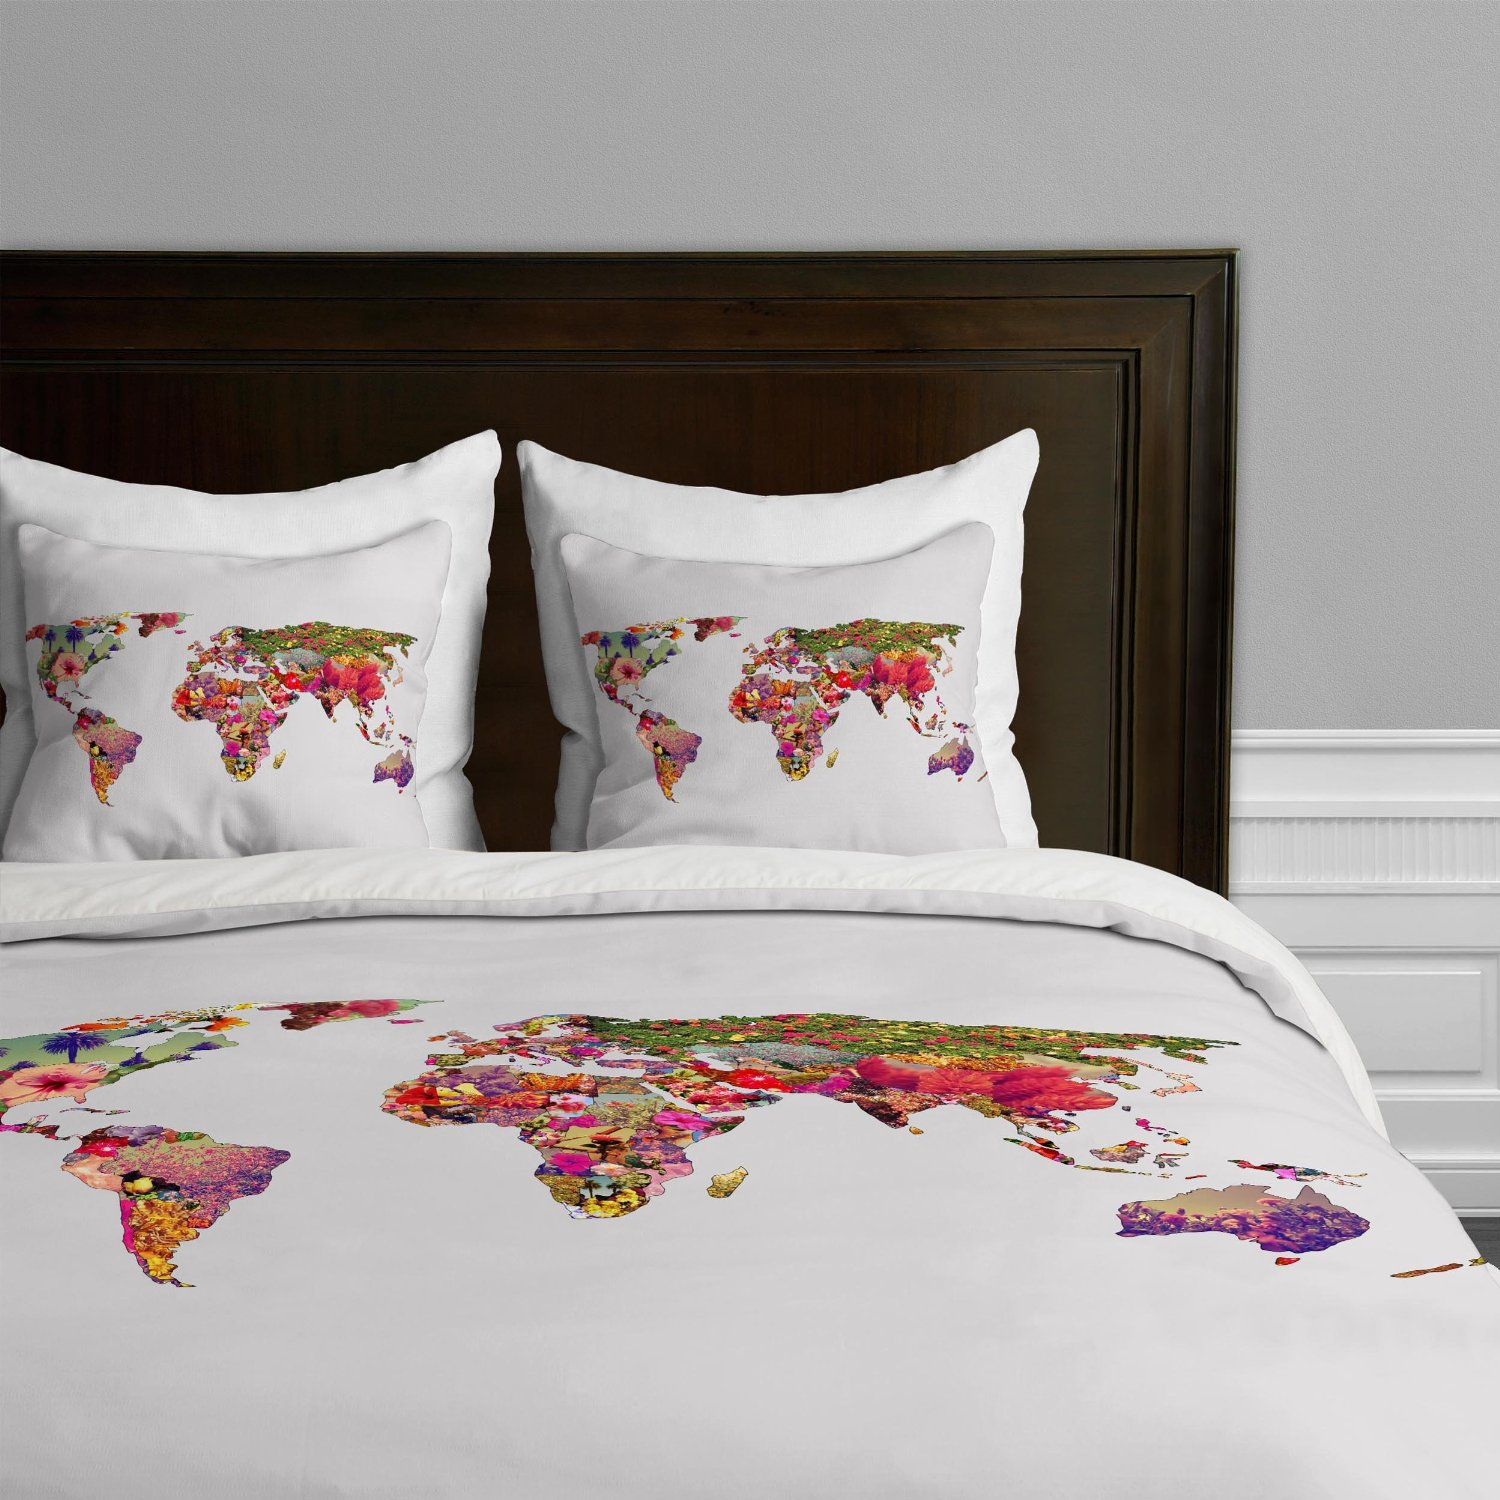 Kawaii Bedroom Ideas Total Fab World Amp Map Themed Comforter And Bedding Sets